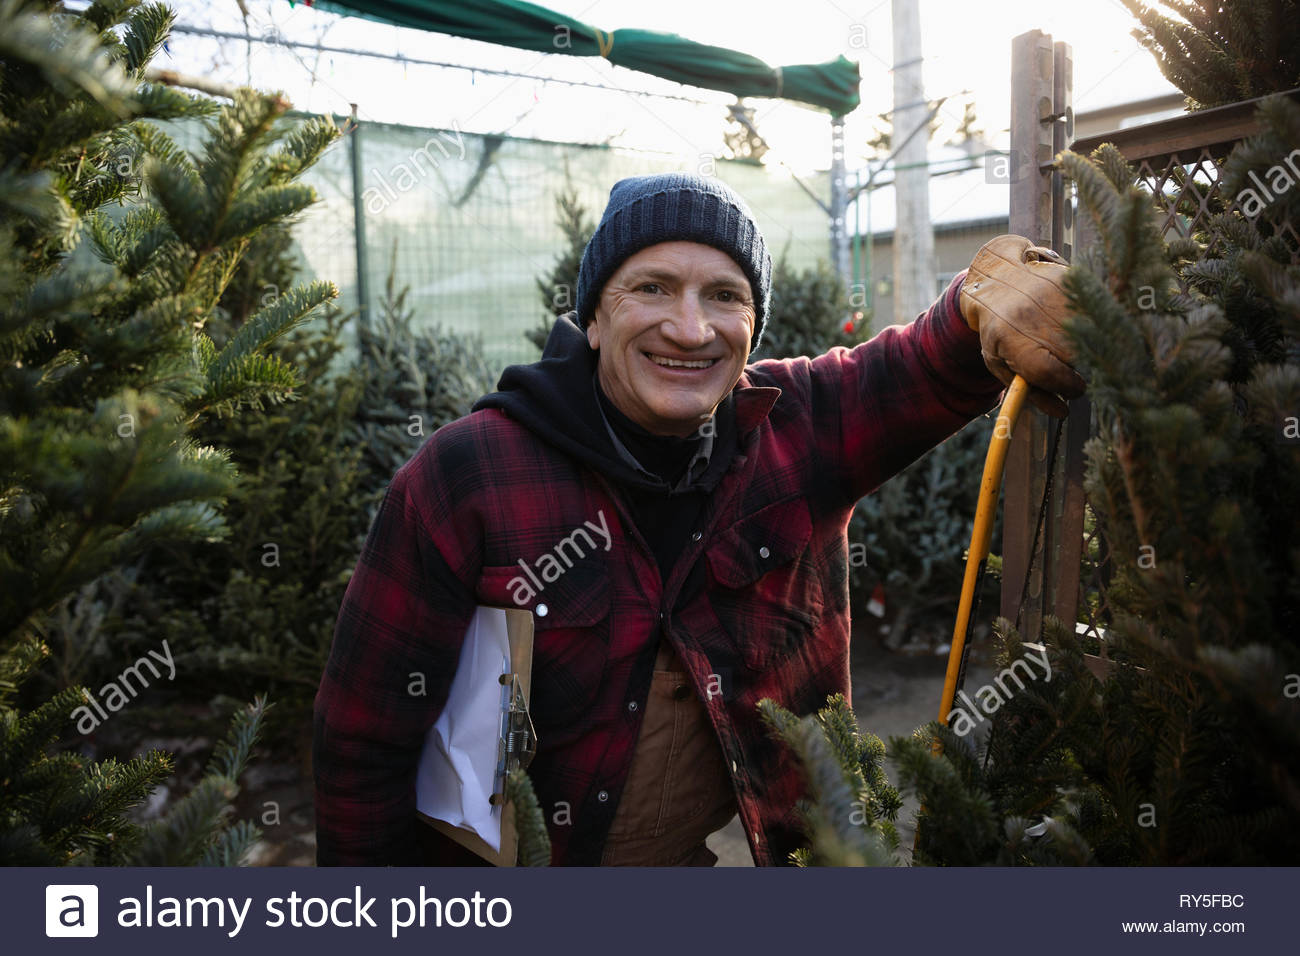 Portrait happy worker at christmas tree market - Stock Image